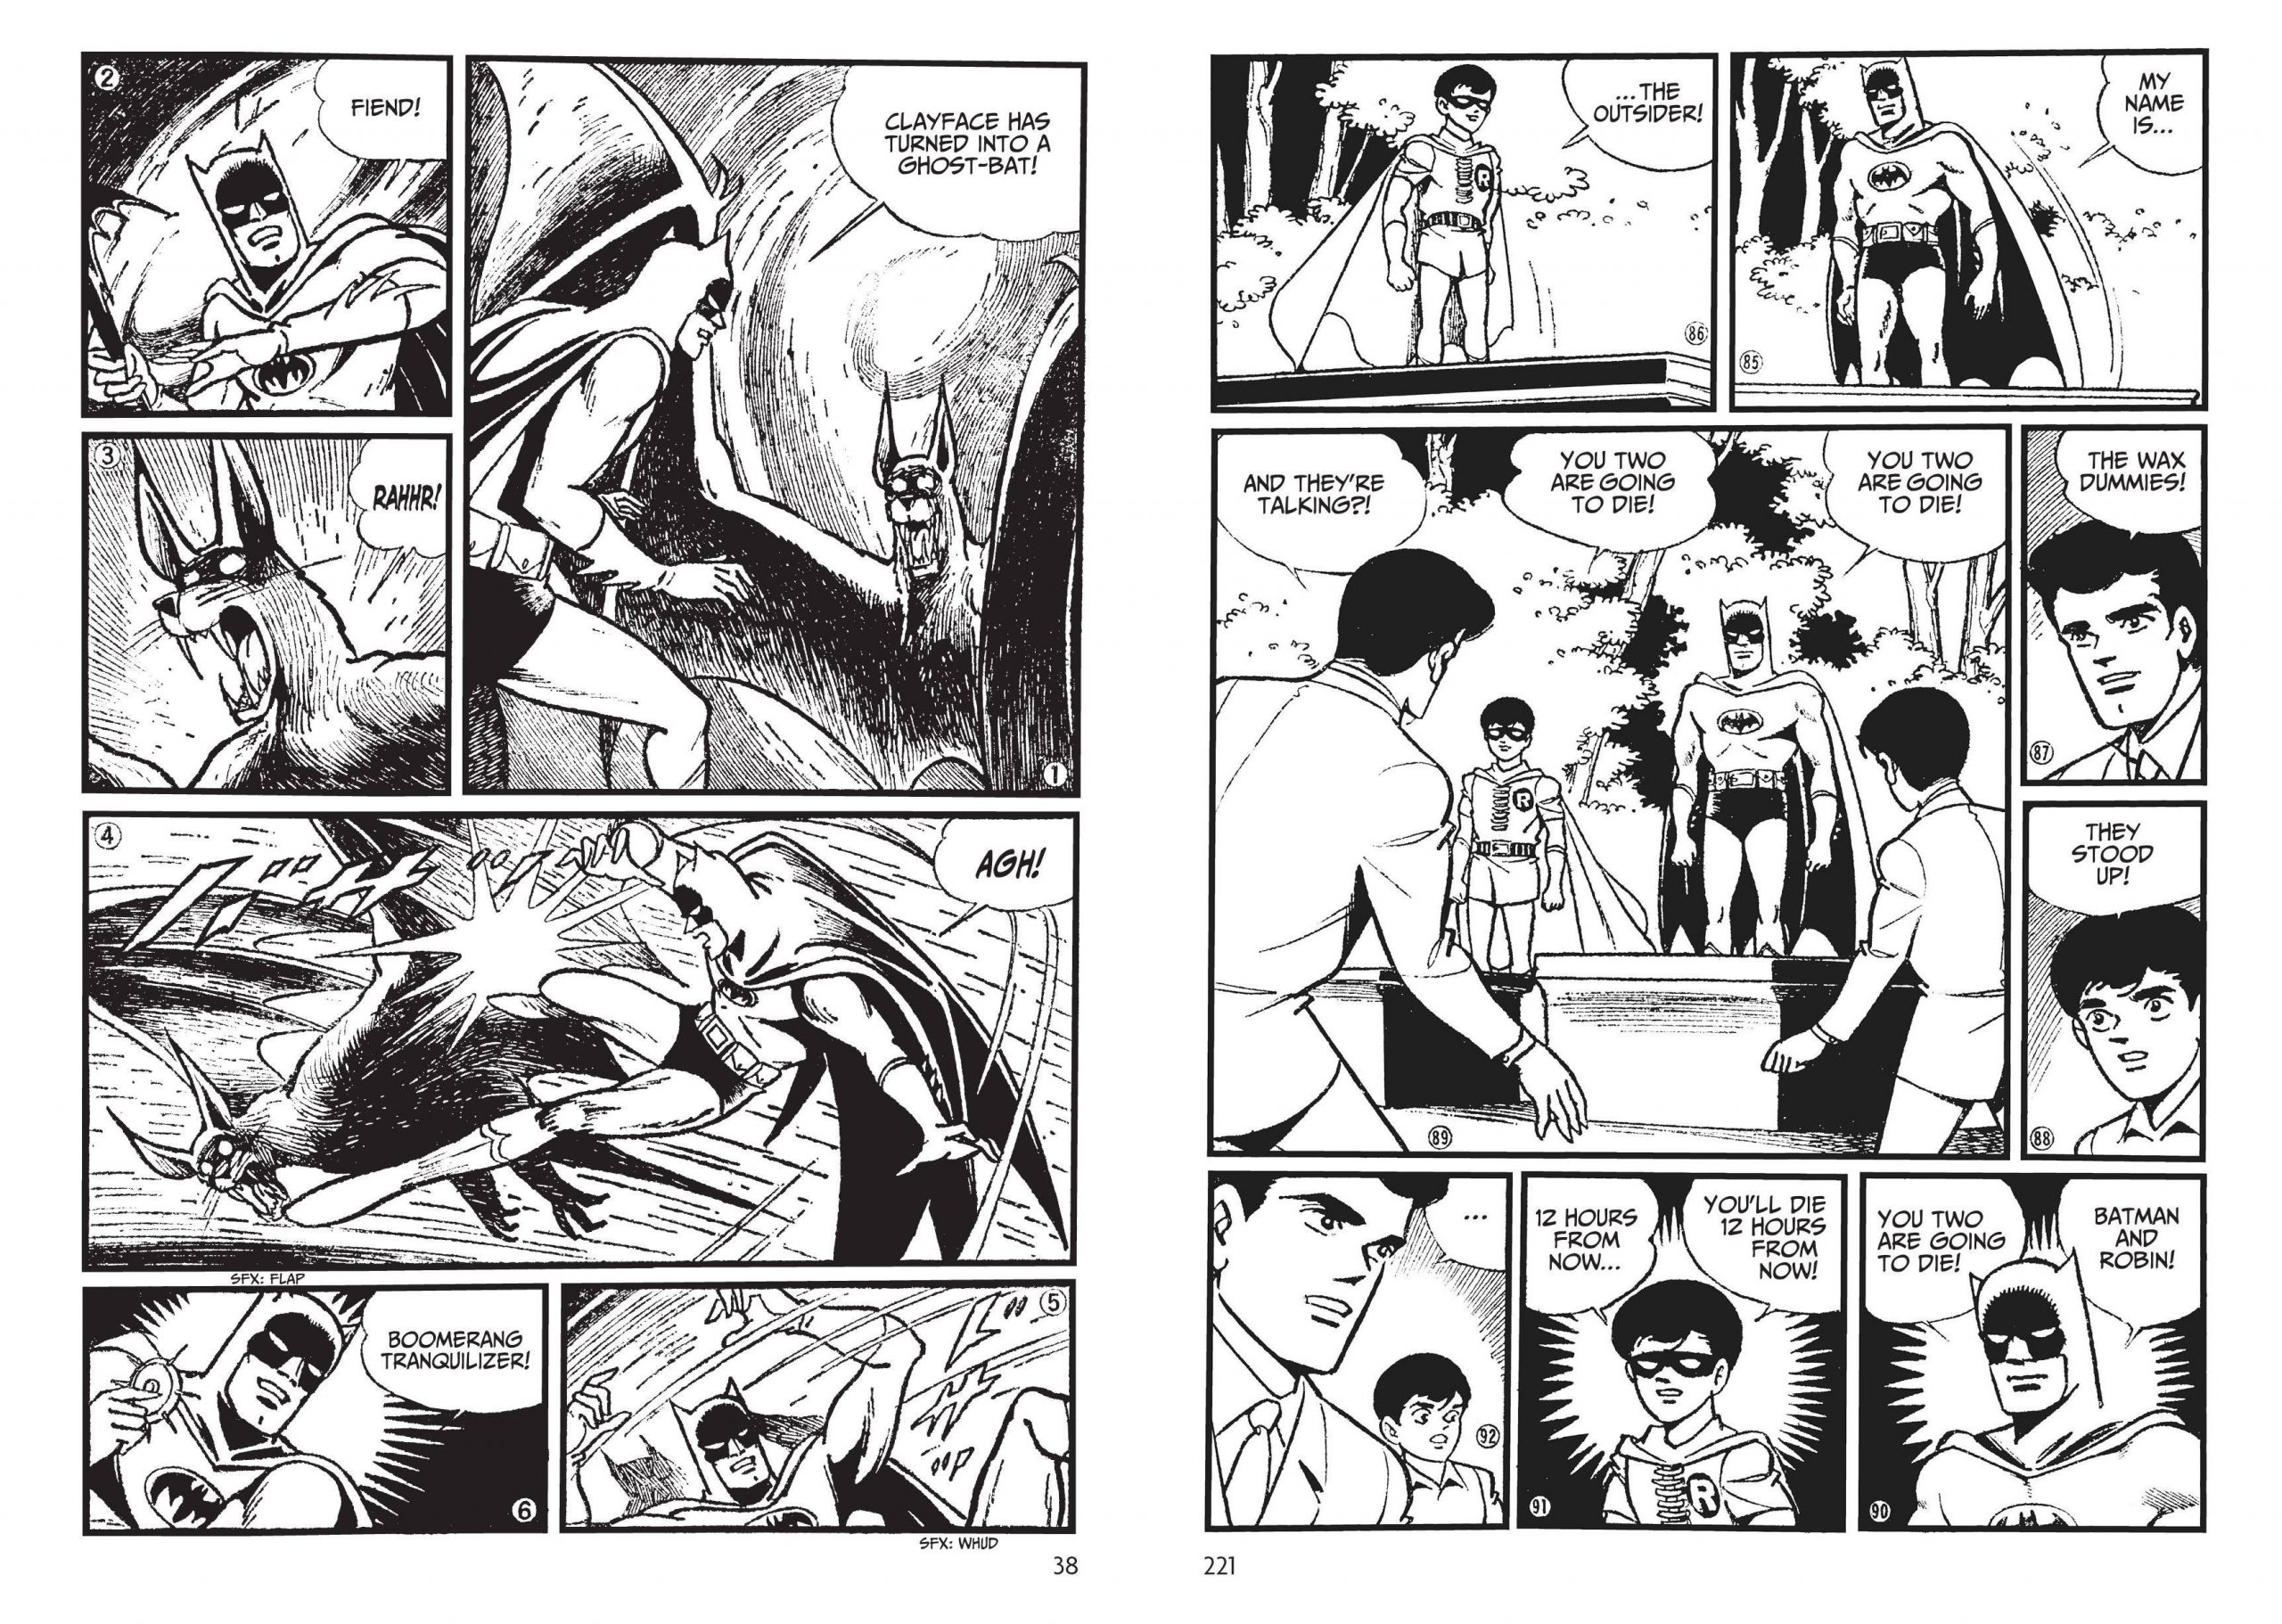 Batman - The Jiro Kuwata Batmanga V2 review